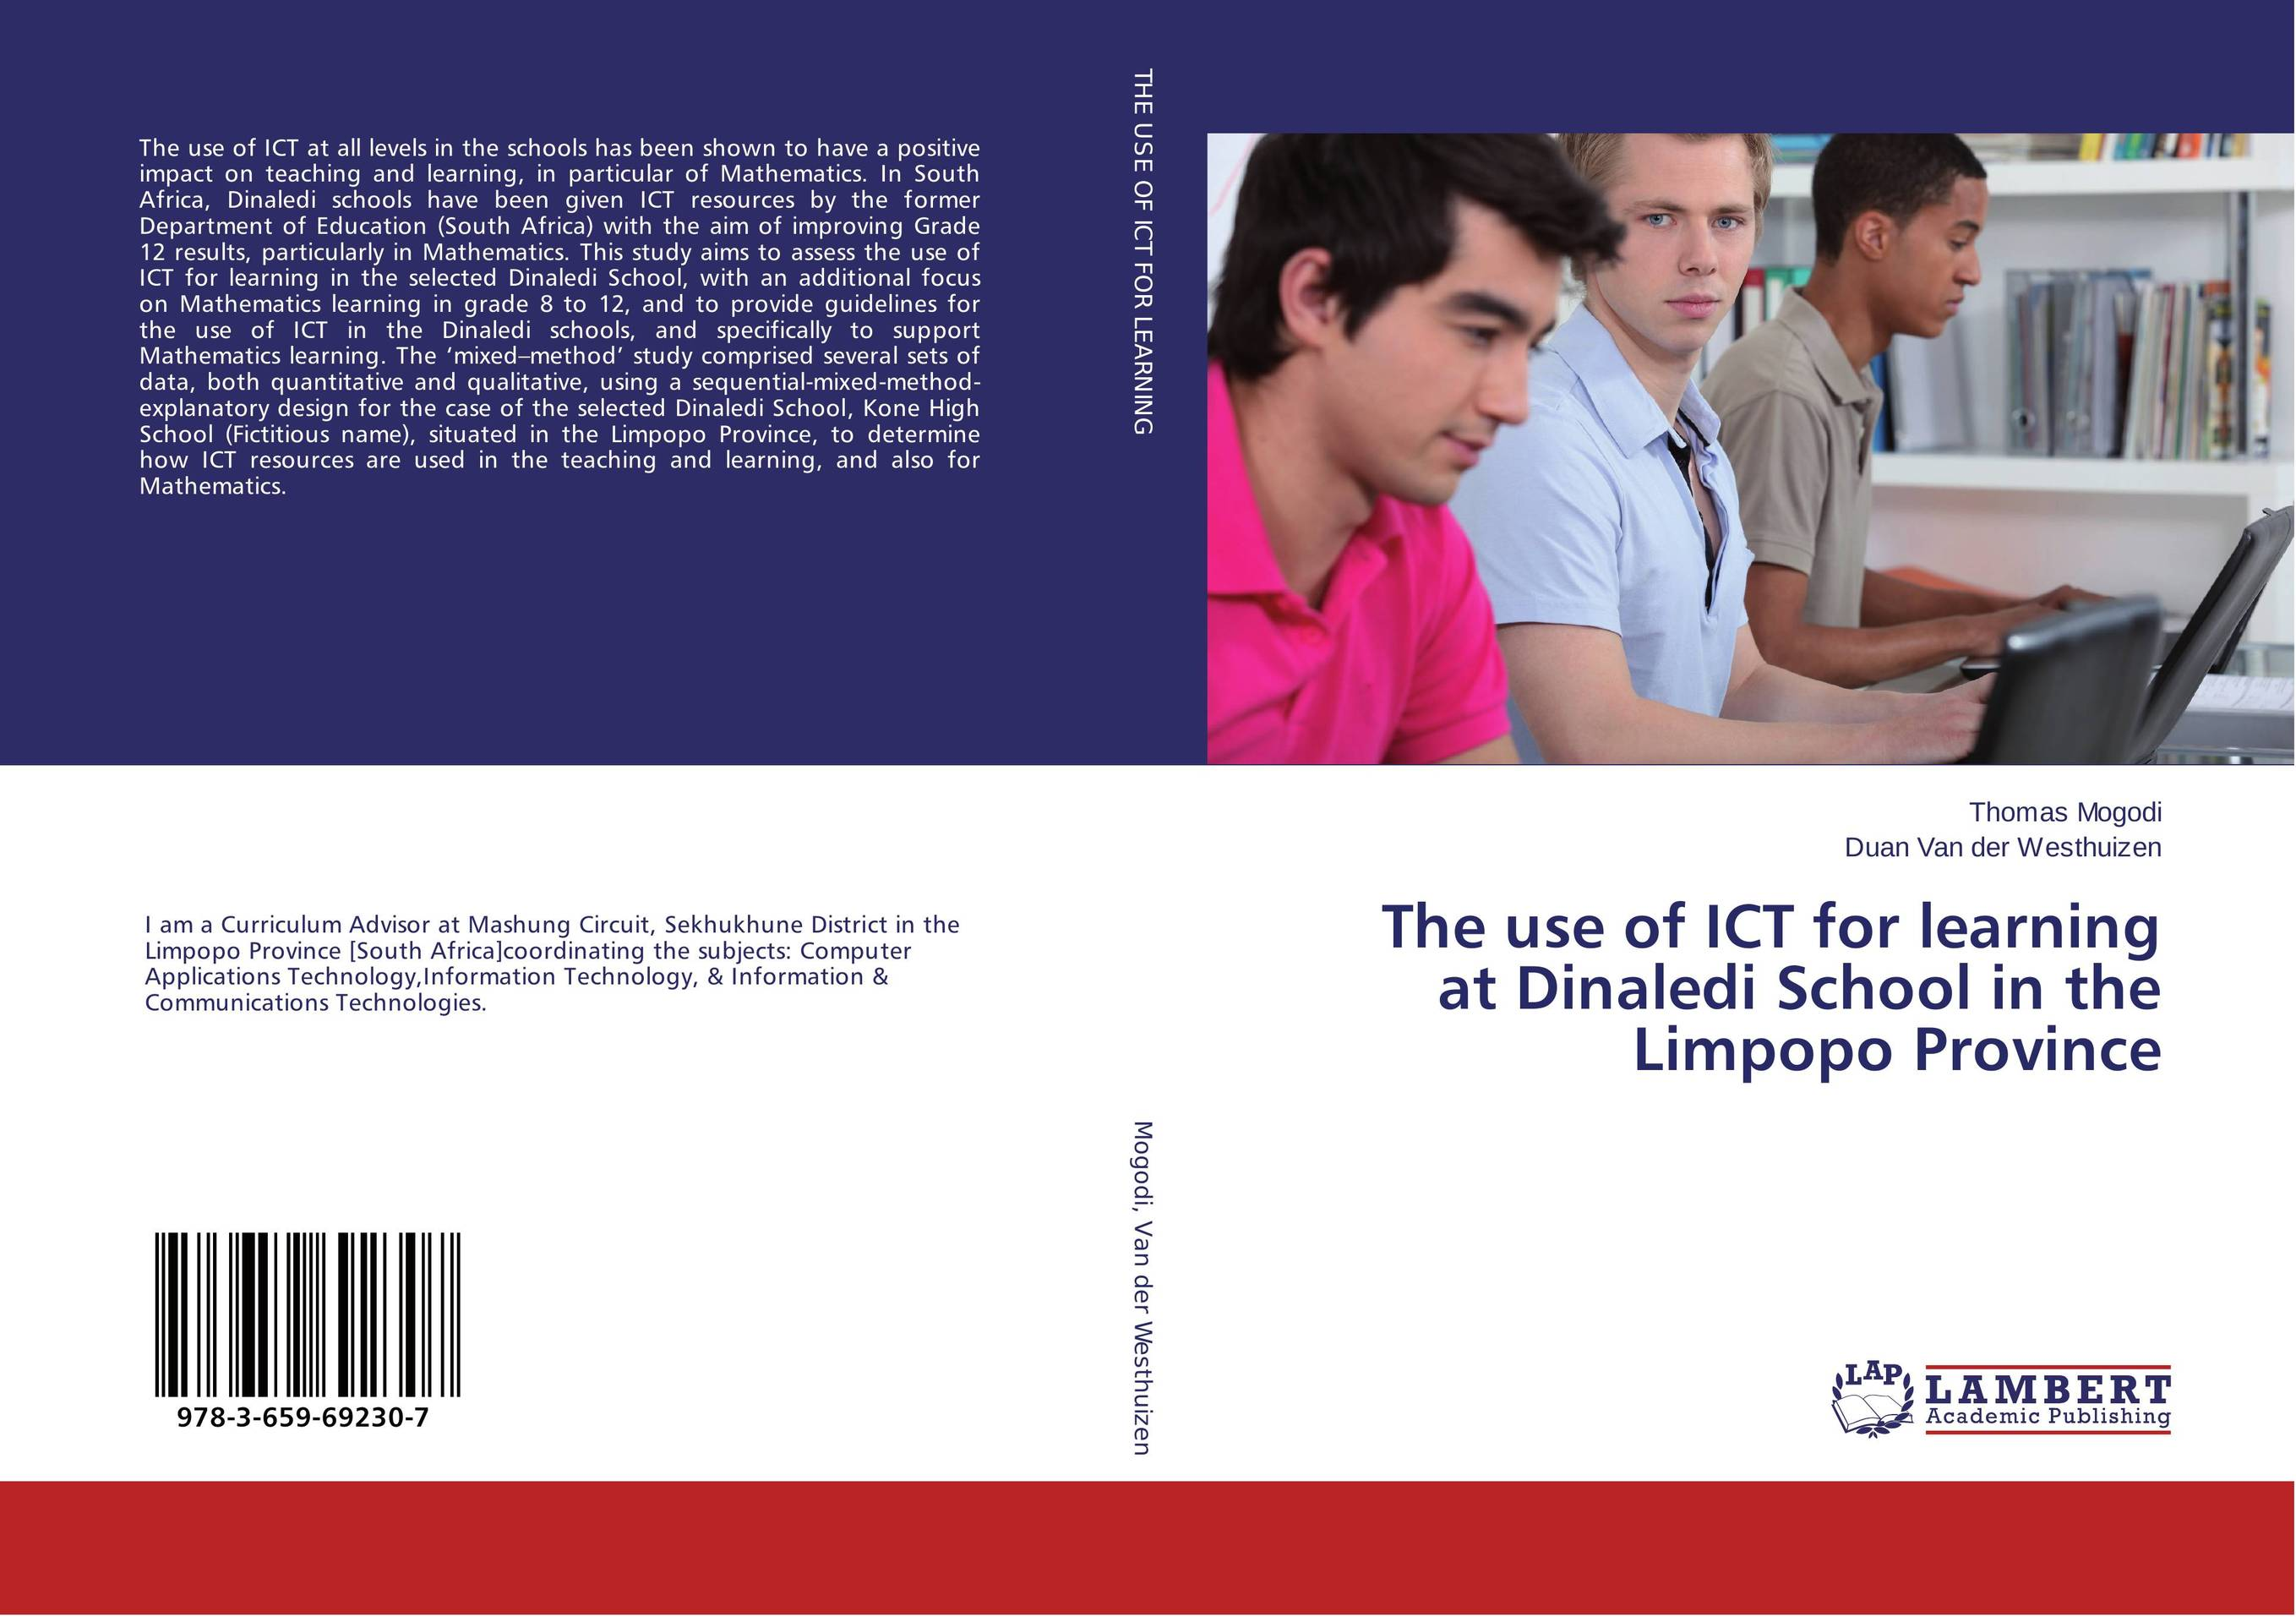 The use of ICT for learning at Dinaledi School in the Limpopo Province the teaching and learning of ict at primary school level in mauritius